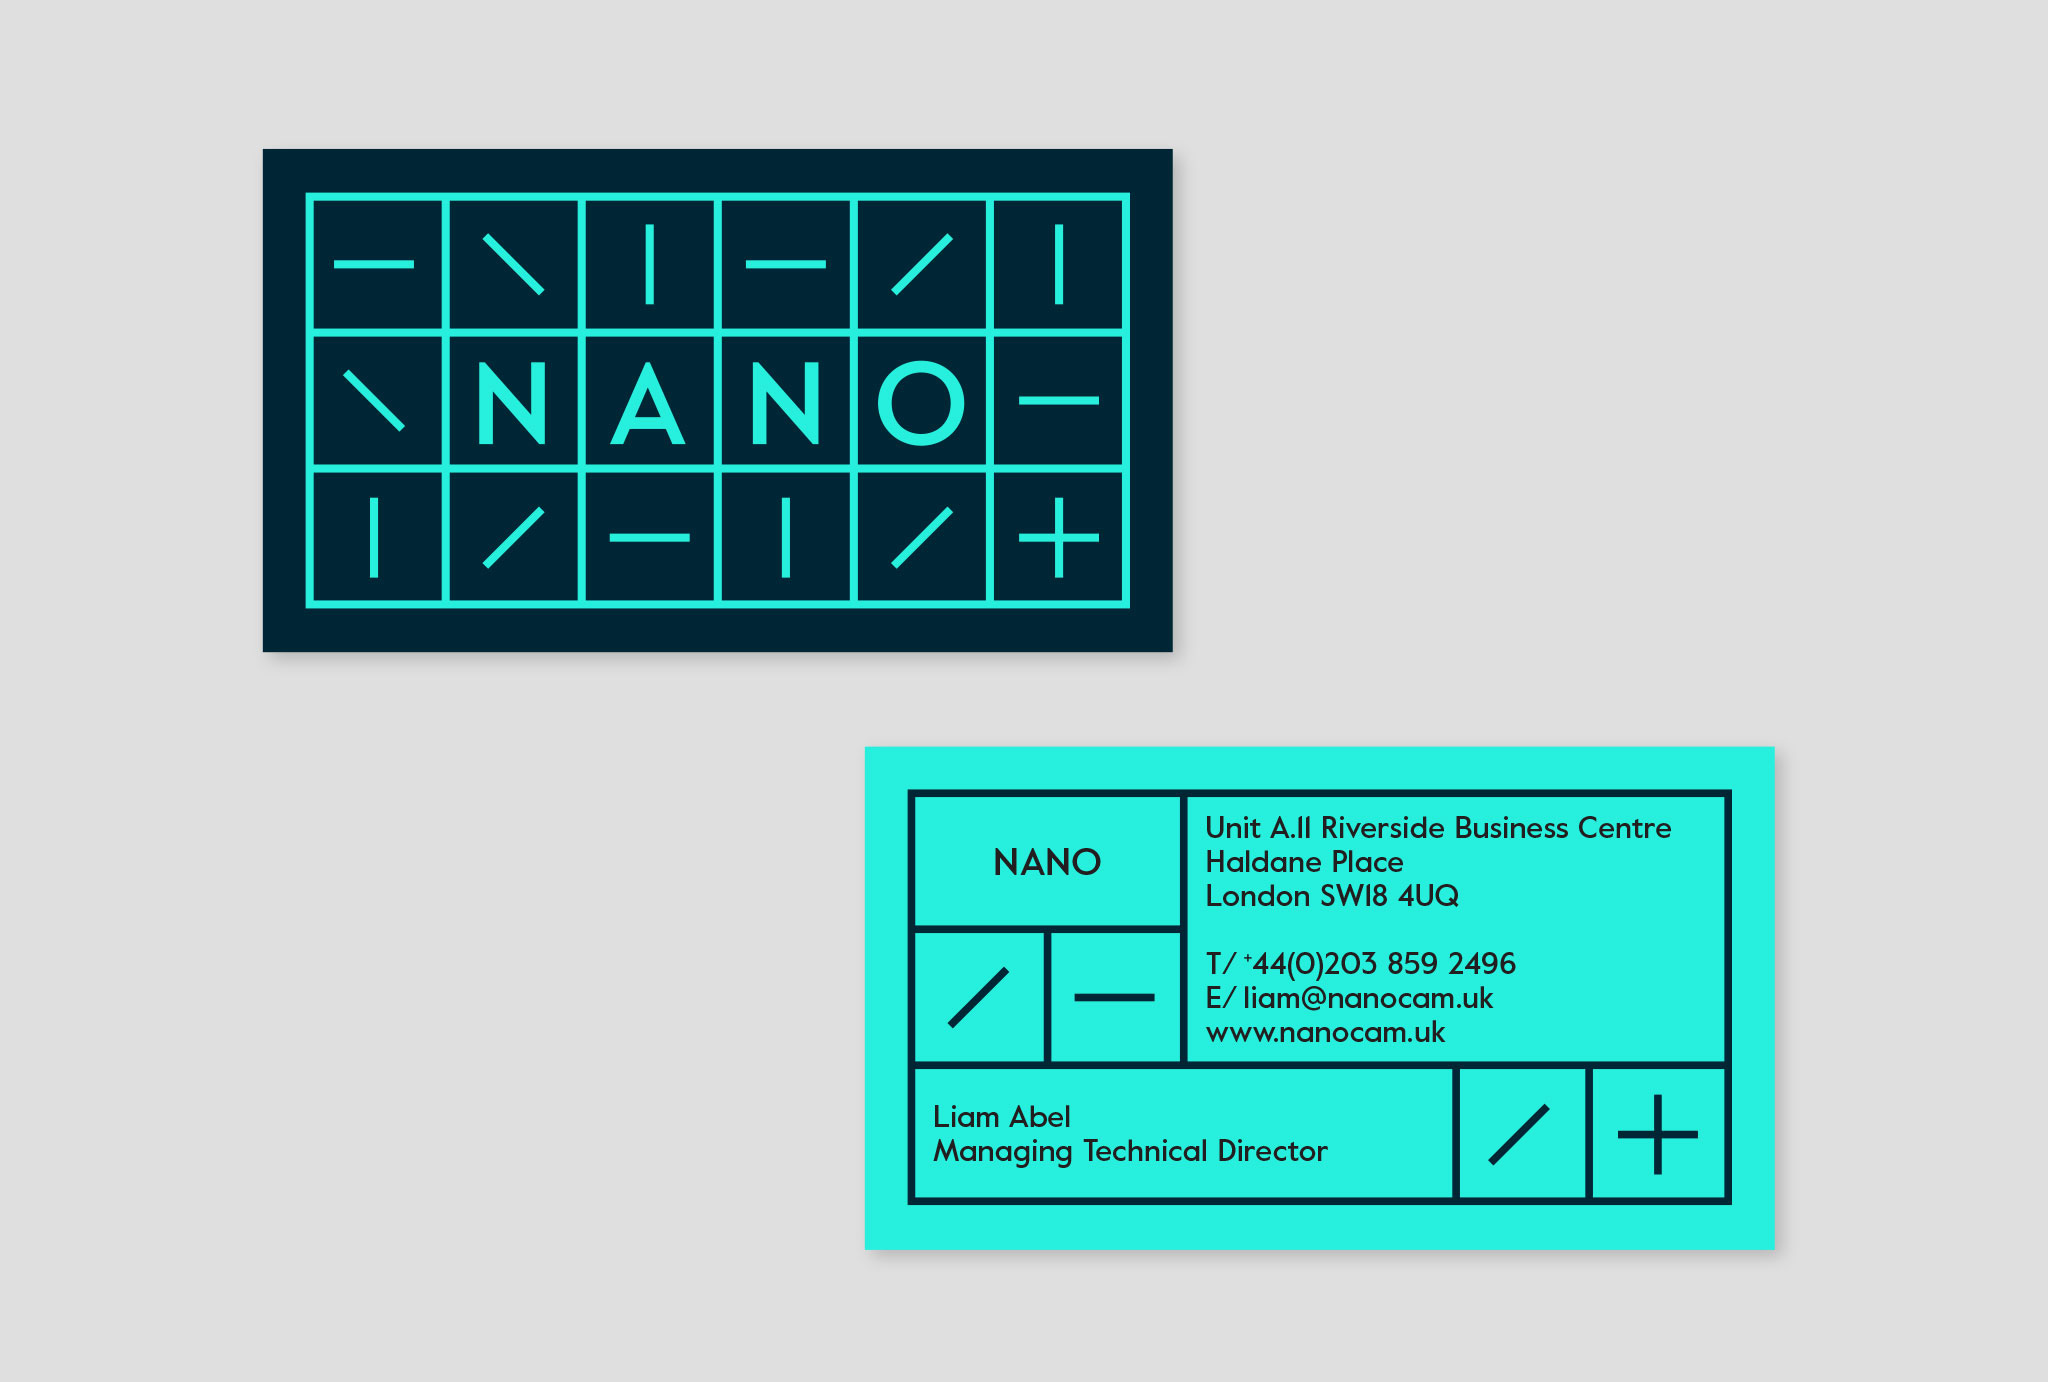 business cards design in bright turquoise and black with 'NANO' logo and company contact details